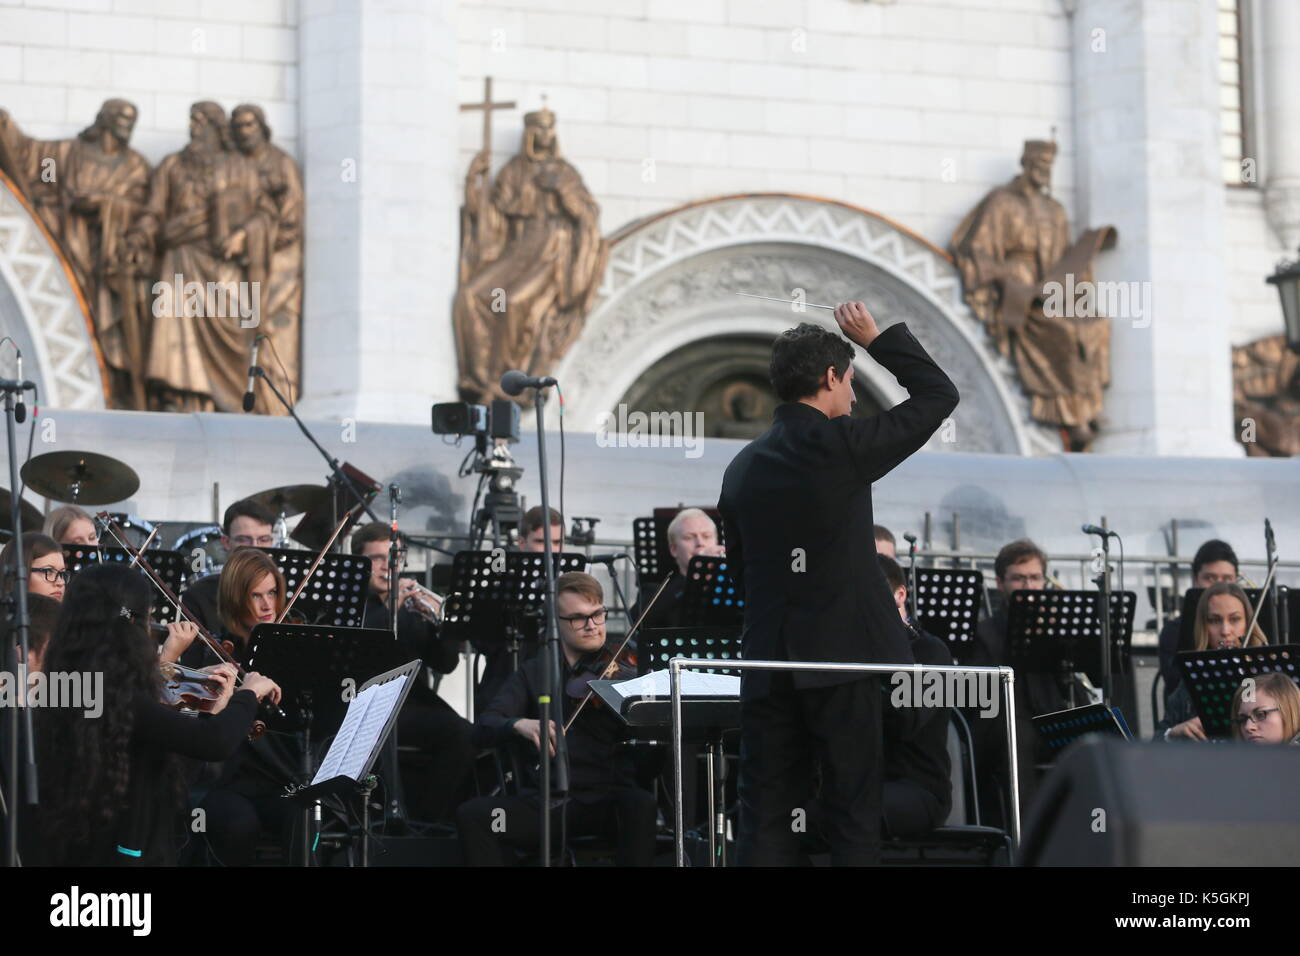 Moscow, Russia. 9th Sep, 2017. A symphony orchestra performs by the Christ the Saviour Cathedral during celebrations marking the 870th birthday of Moscow. Credit: Andrei Makhonin/TASS/Alamy Live News - Stock Image